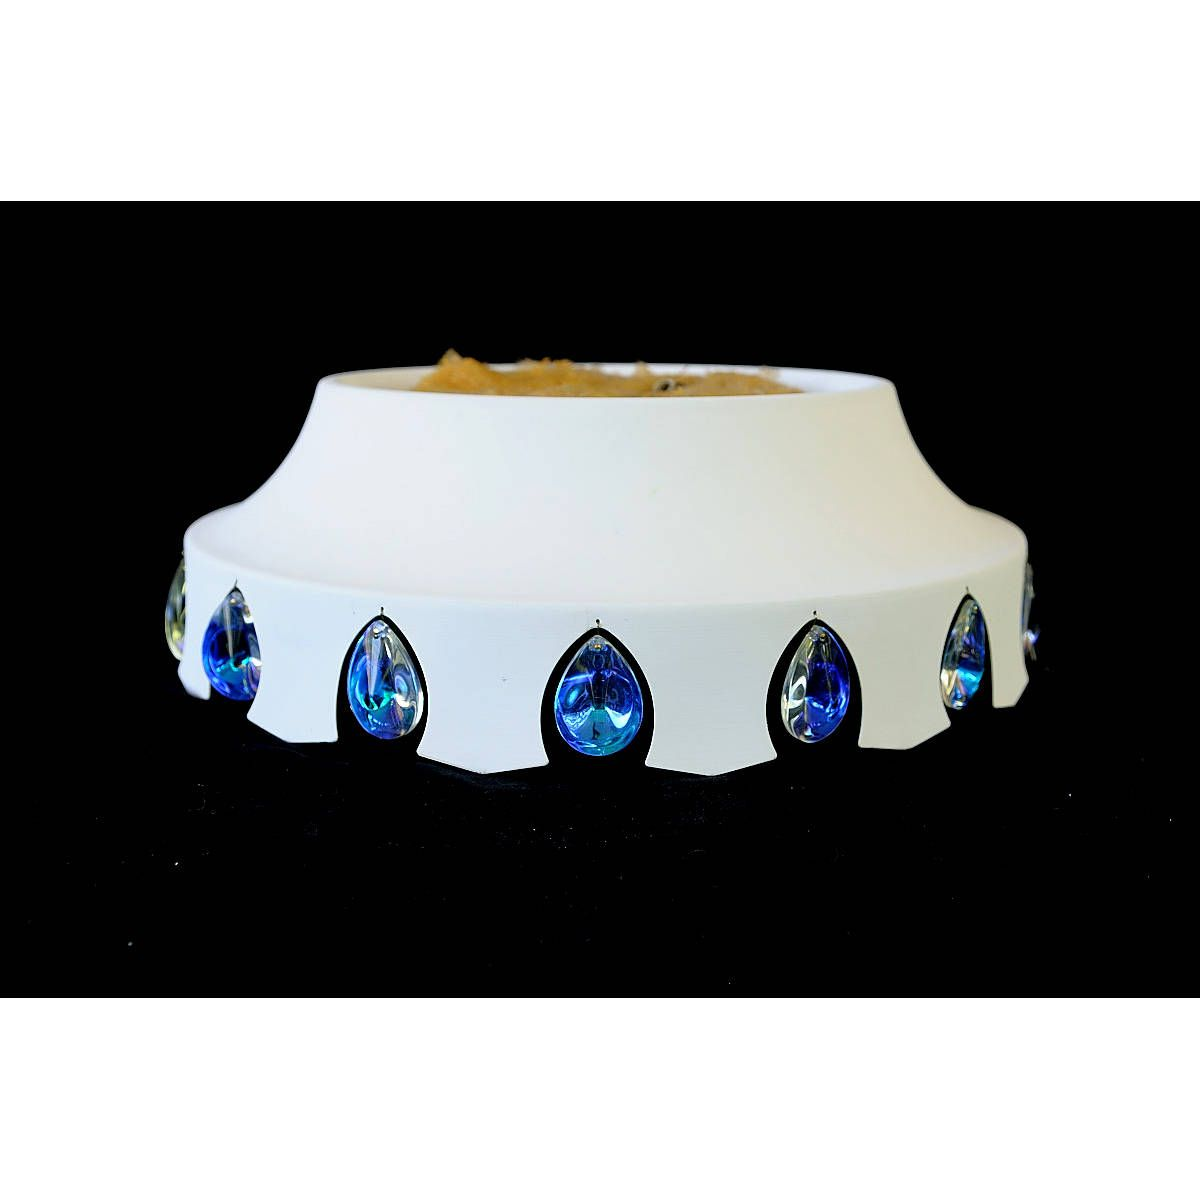 NOS MOE Light Fixture White Blue Glass Jewels Lancelot Ceiling Gold Mid Century Atomic Mad Men Lamp Light Chandelier Swag TheHeartTheHome by TheHeartTheHome on Etsy